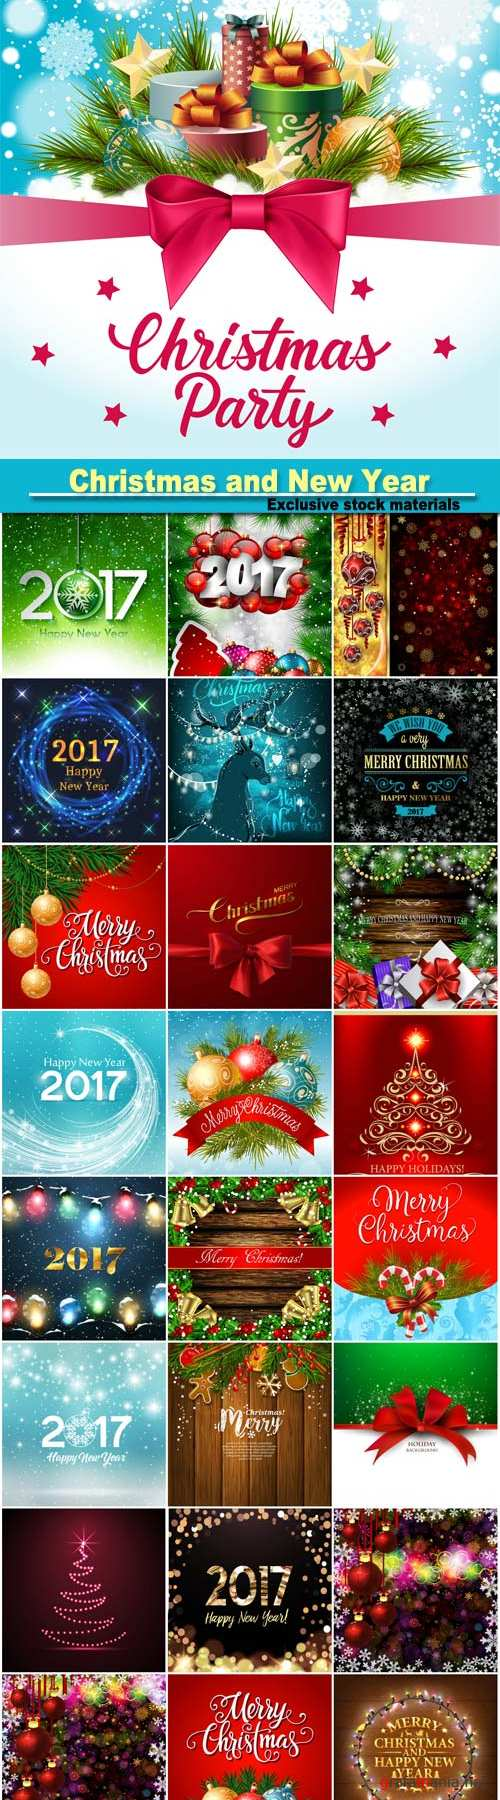 Christmas and New Year design background, christmas garland, gift boxes and snow